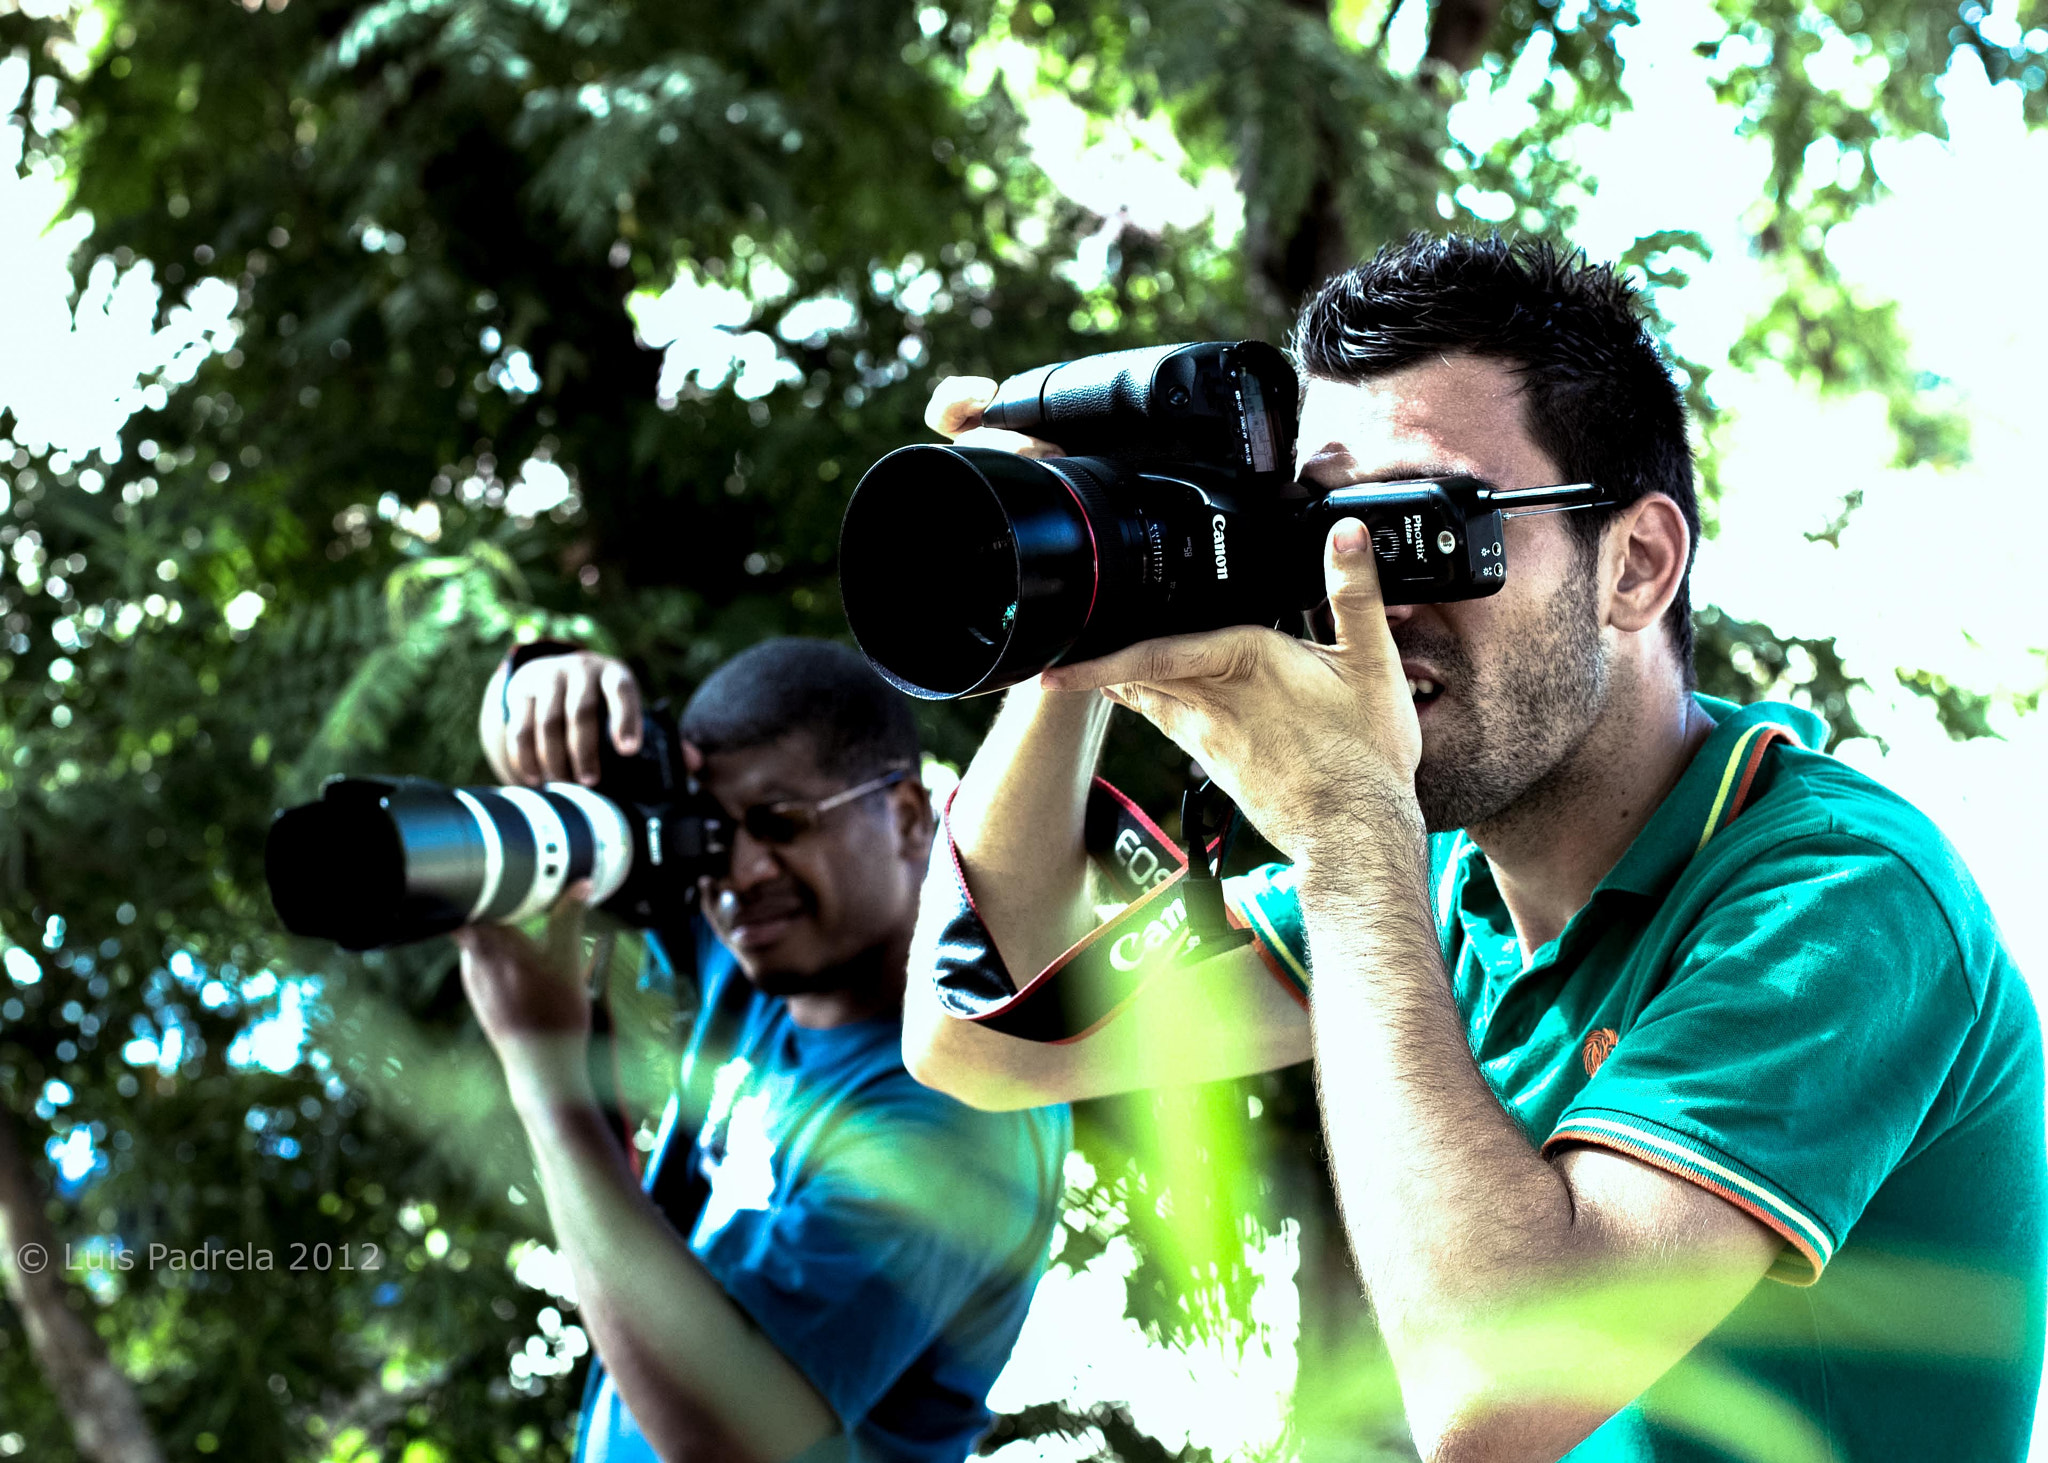 Photograph Image Hunters hunted by Luis Padrela on 500px